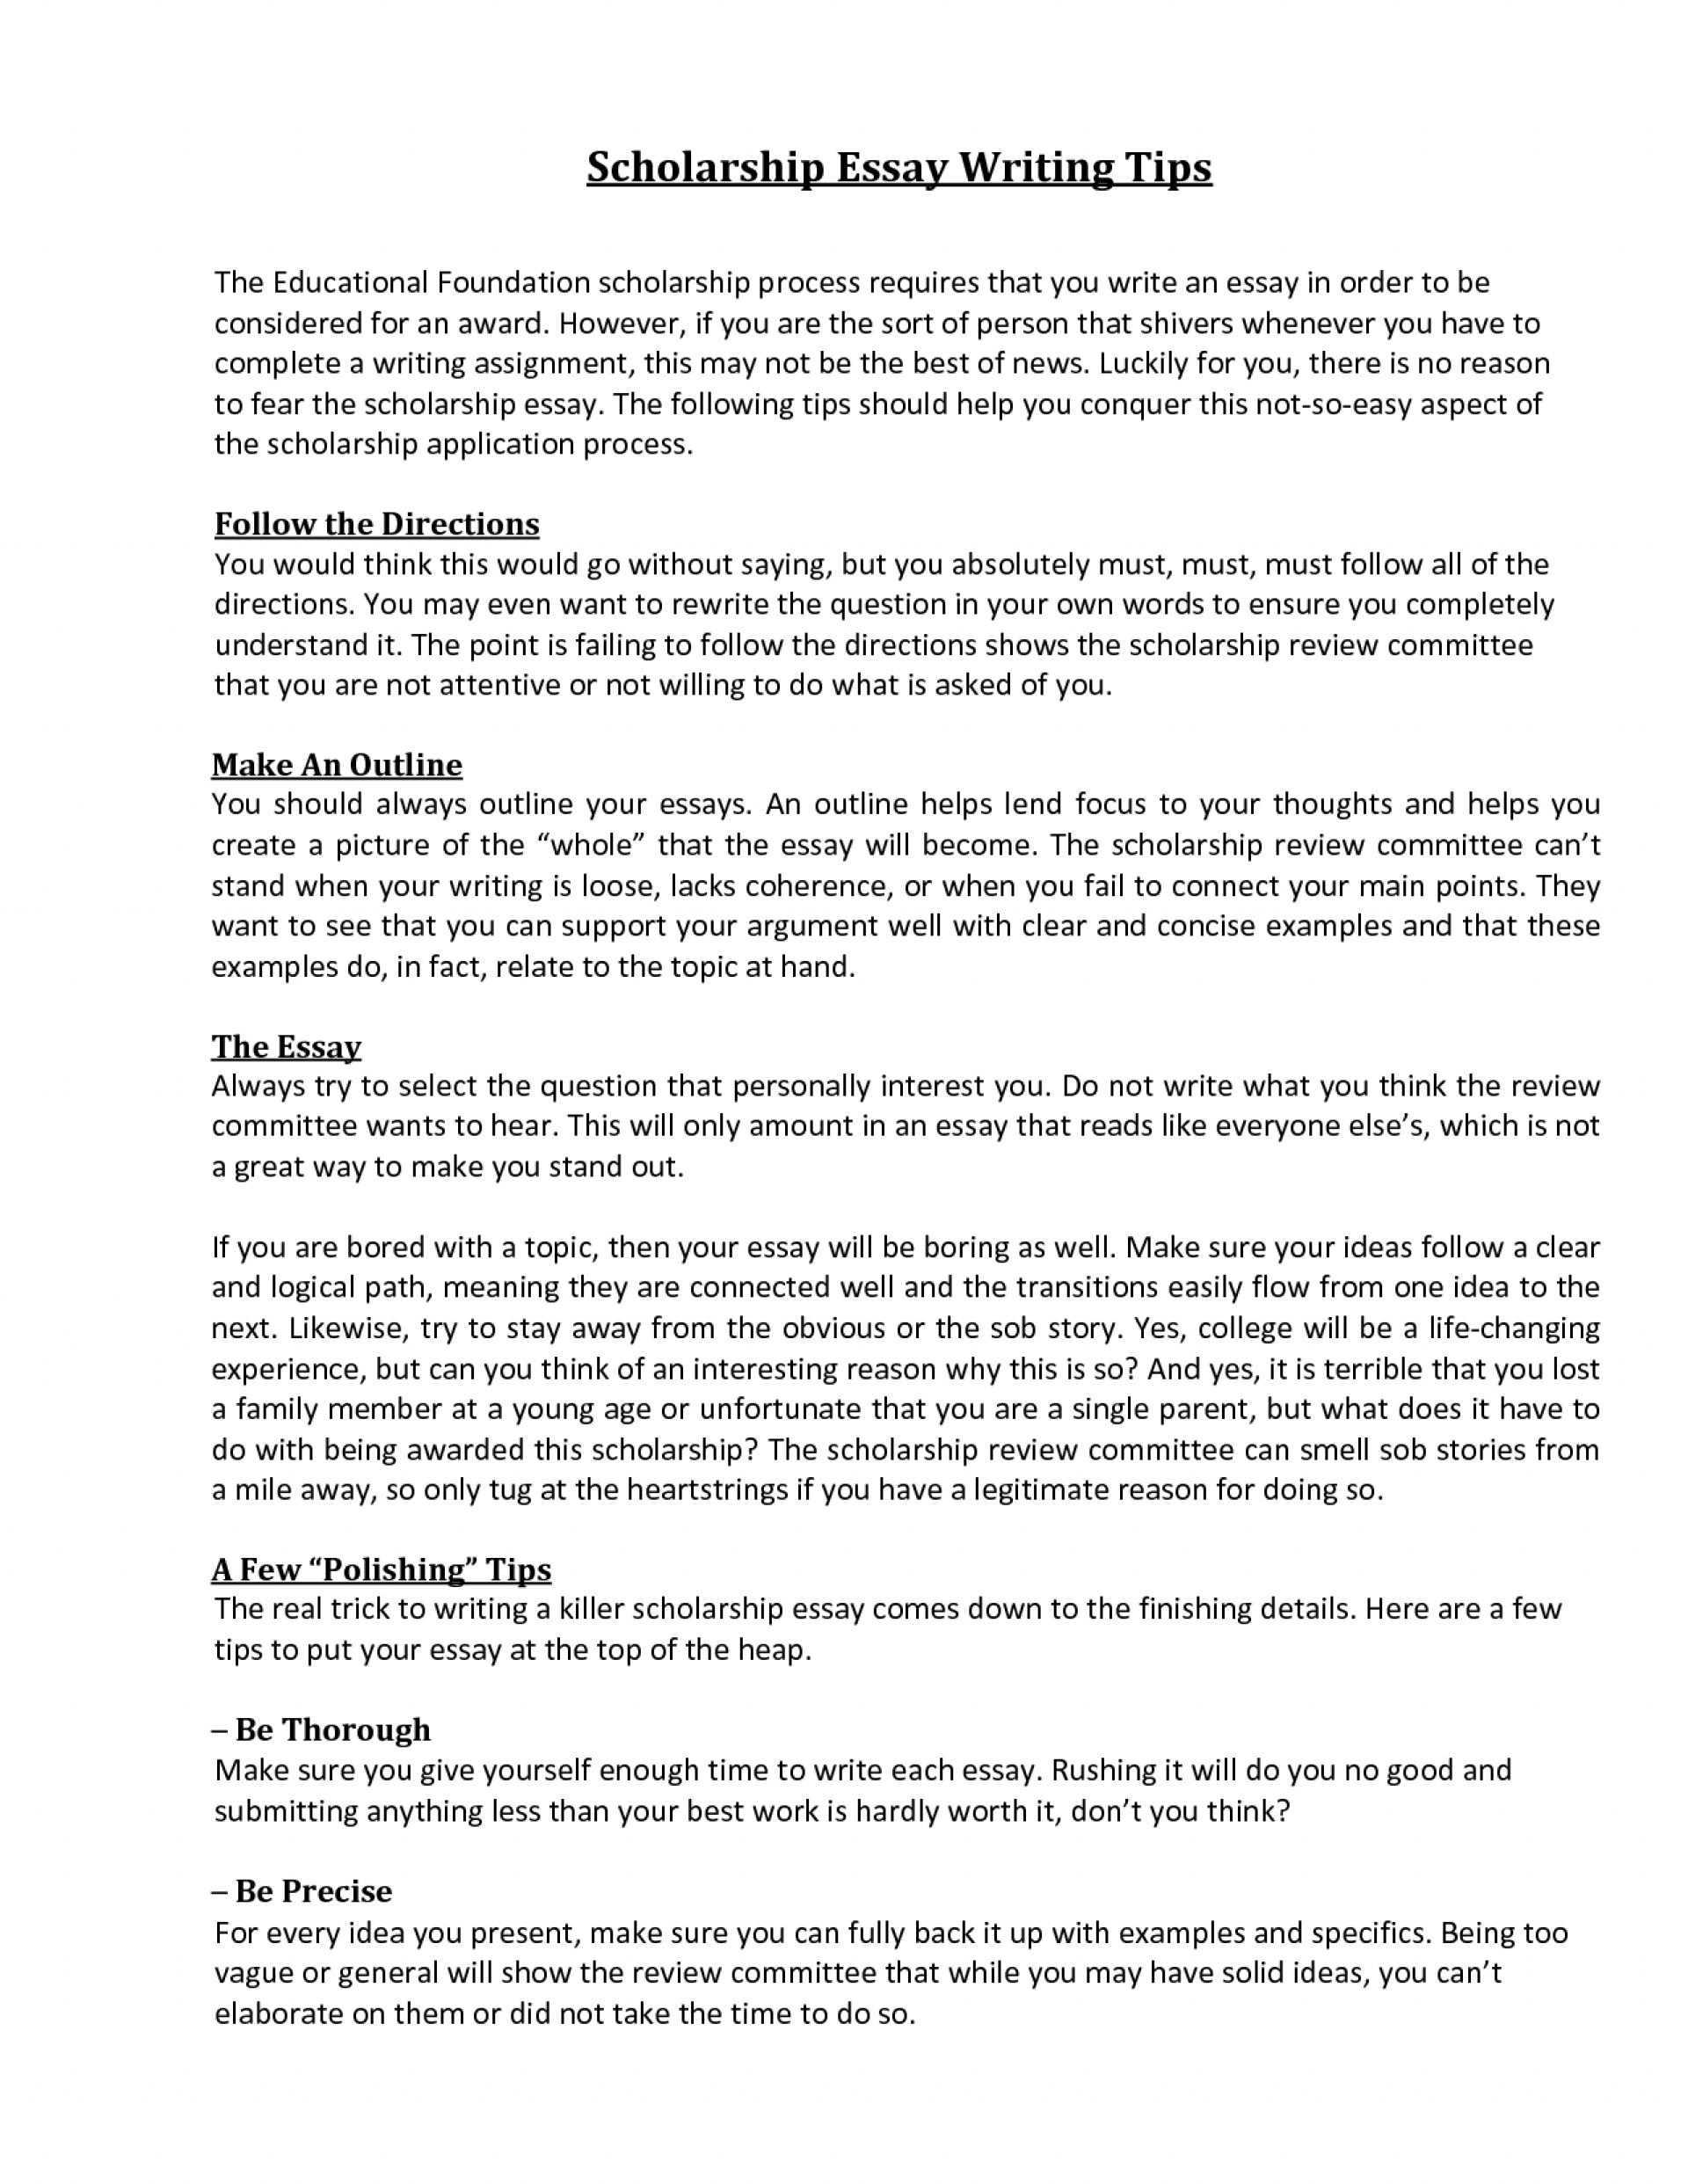 004 Websites For Essay Writing Website That Writes Essays